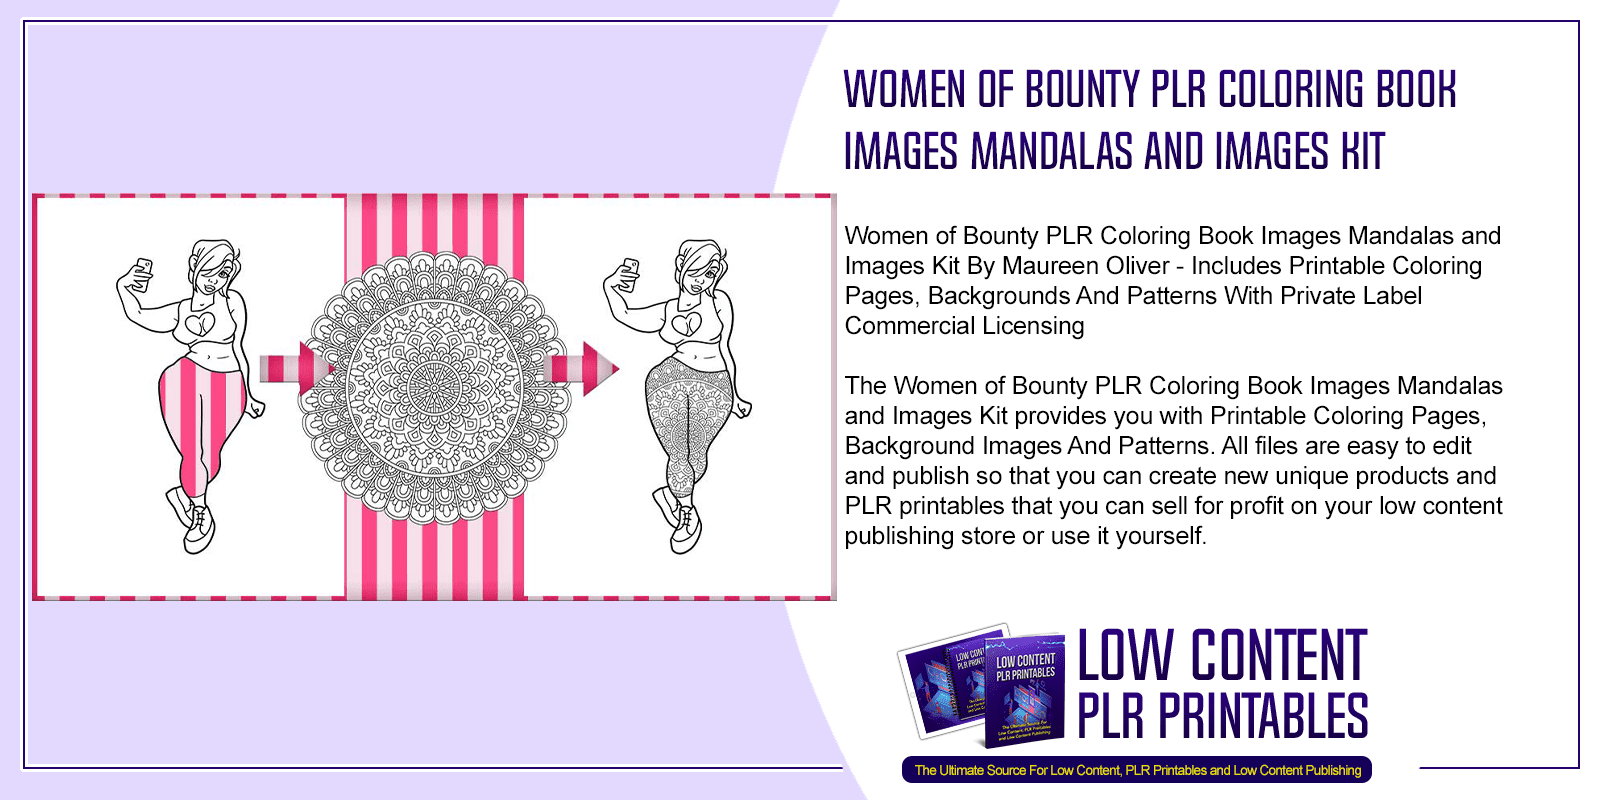 Women of Bounty PLR Coloring Book Images Mandalas and Images Kit